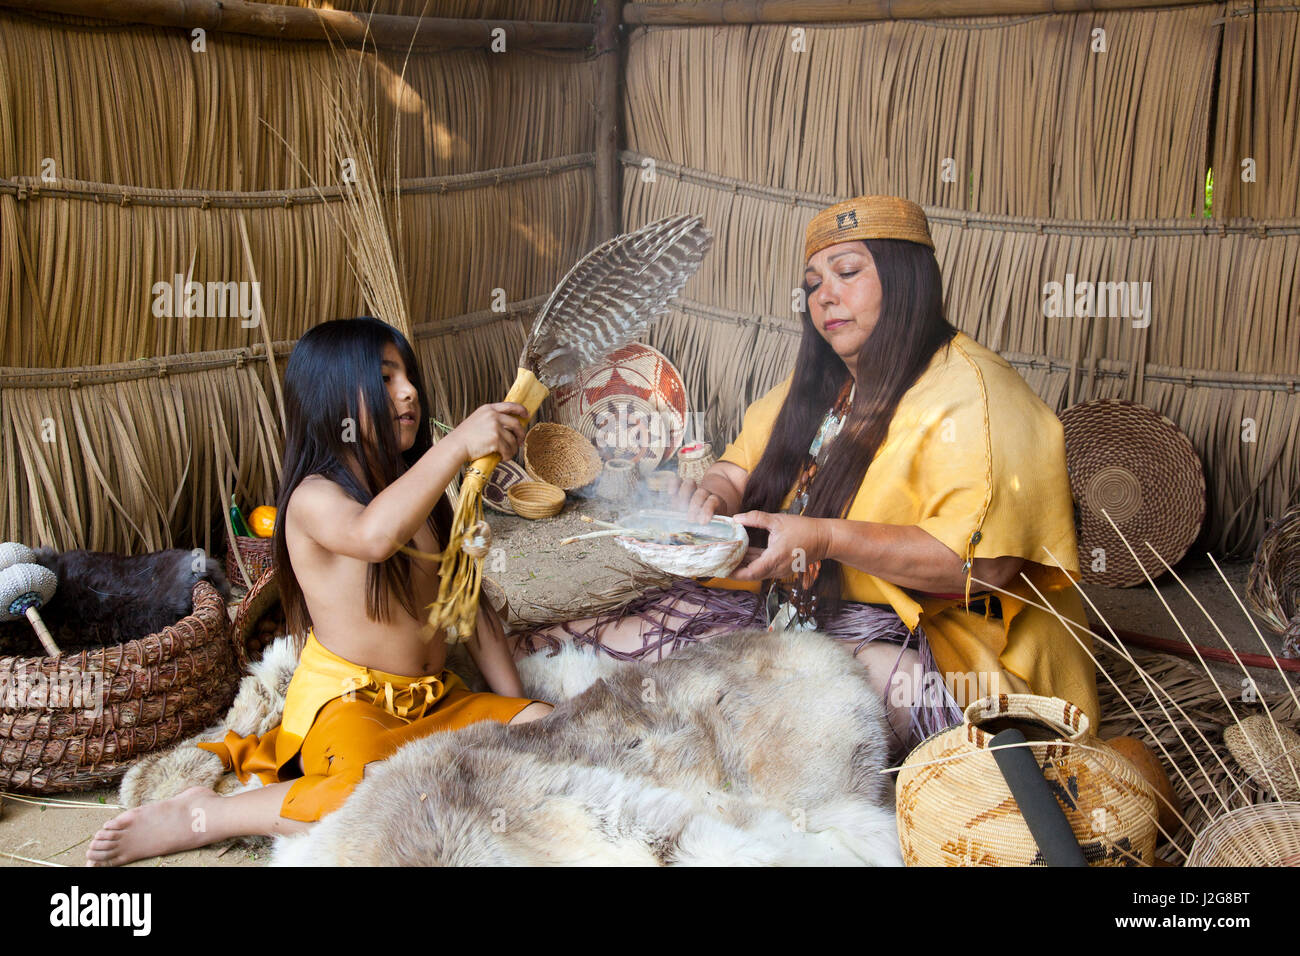 Acjachemen Nation (San Juan Capistrano Mission Indians) hands down medicinal tradition to her grandson. Burning of dried white sage, abalone shell and a feather wing fan to distribute the medicinal smoke inside of a traditional Tule reed shelter.